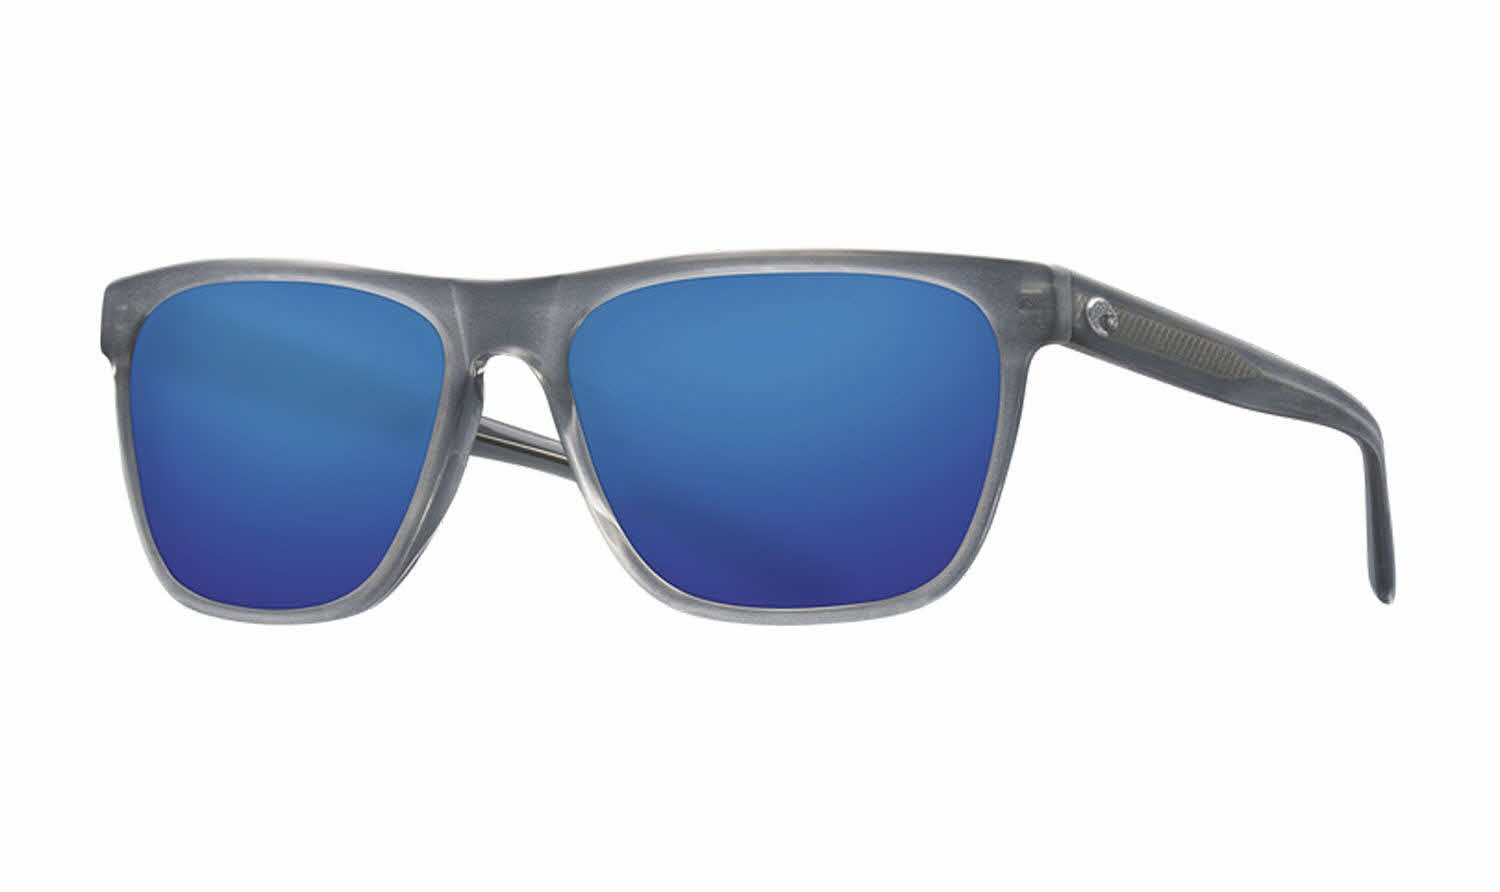 992ba7773297 Costa Apalach - Del Mar Collection Sunglasses | Free Shipping